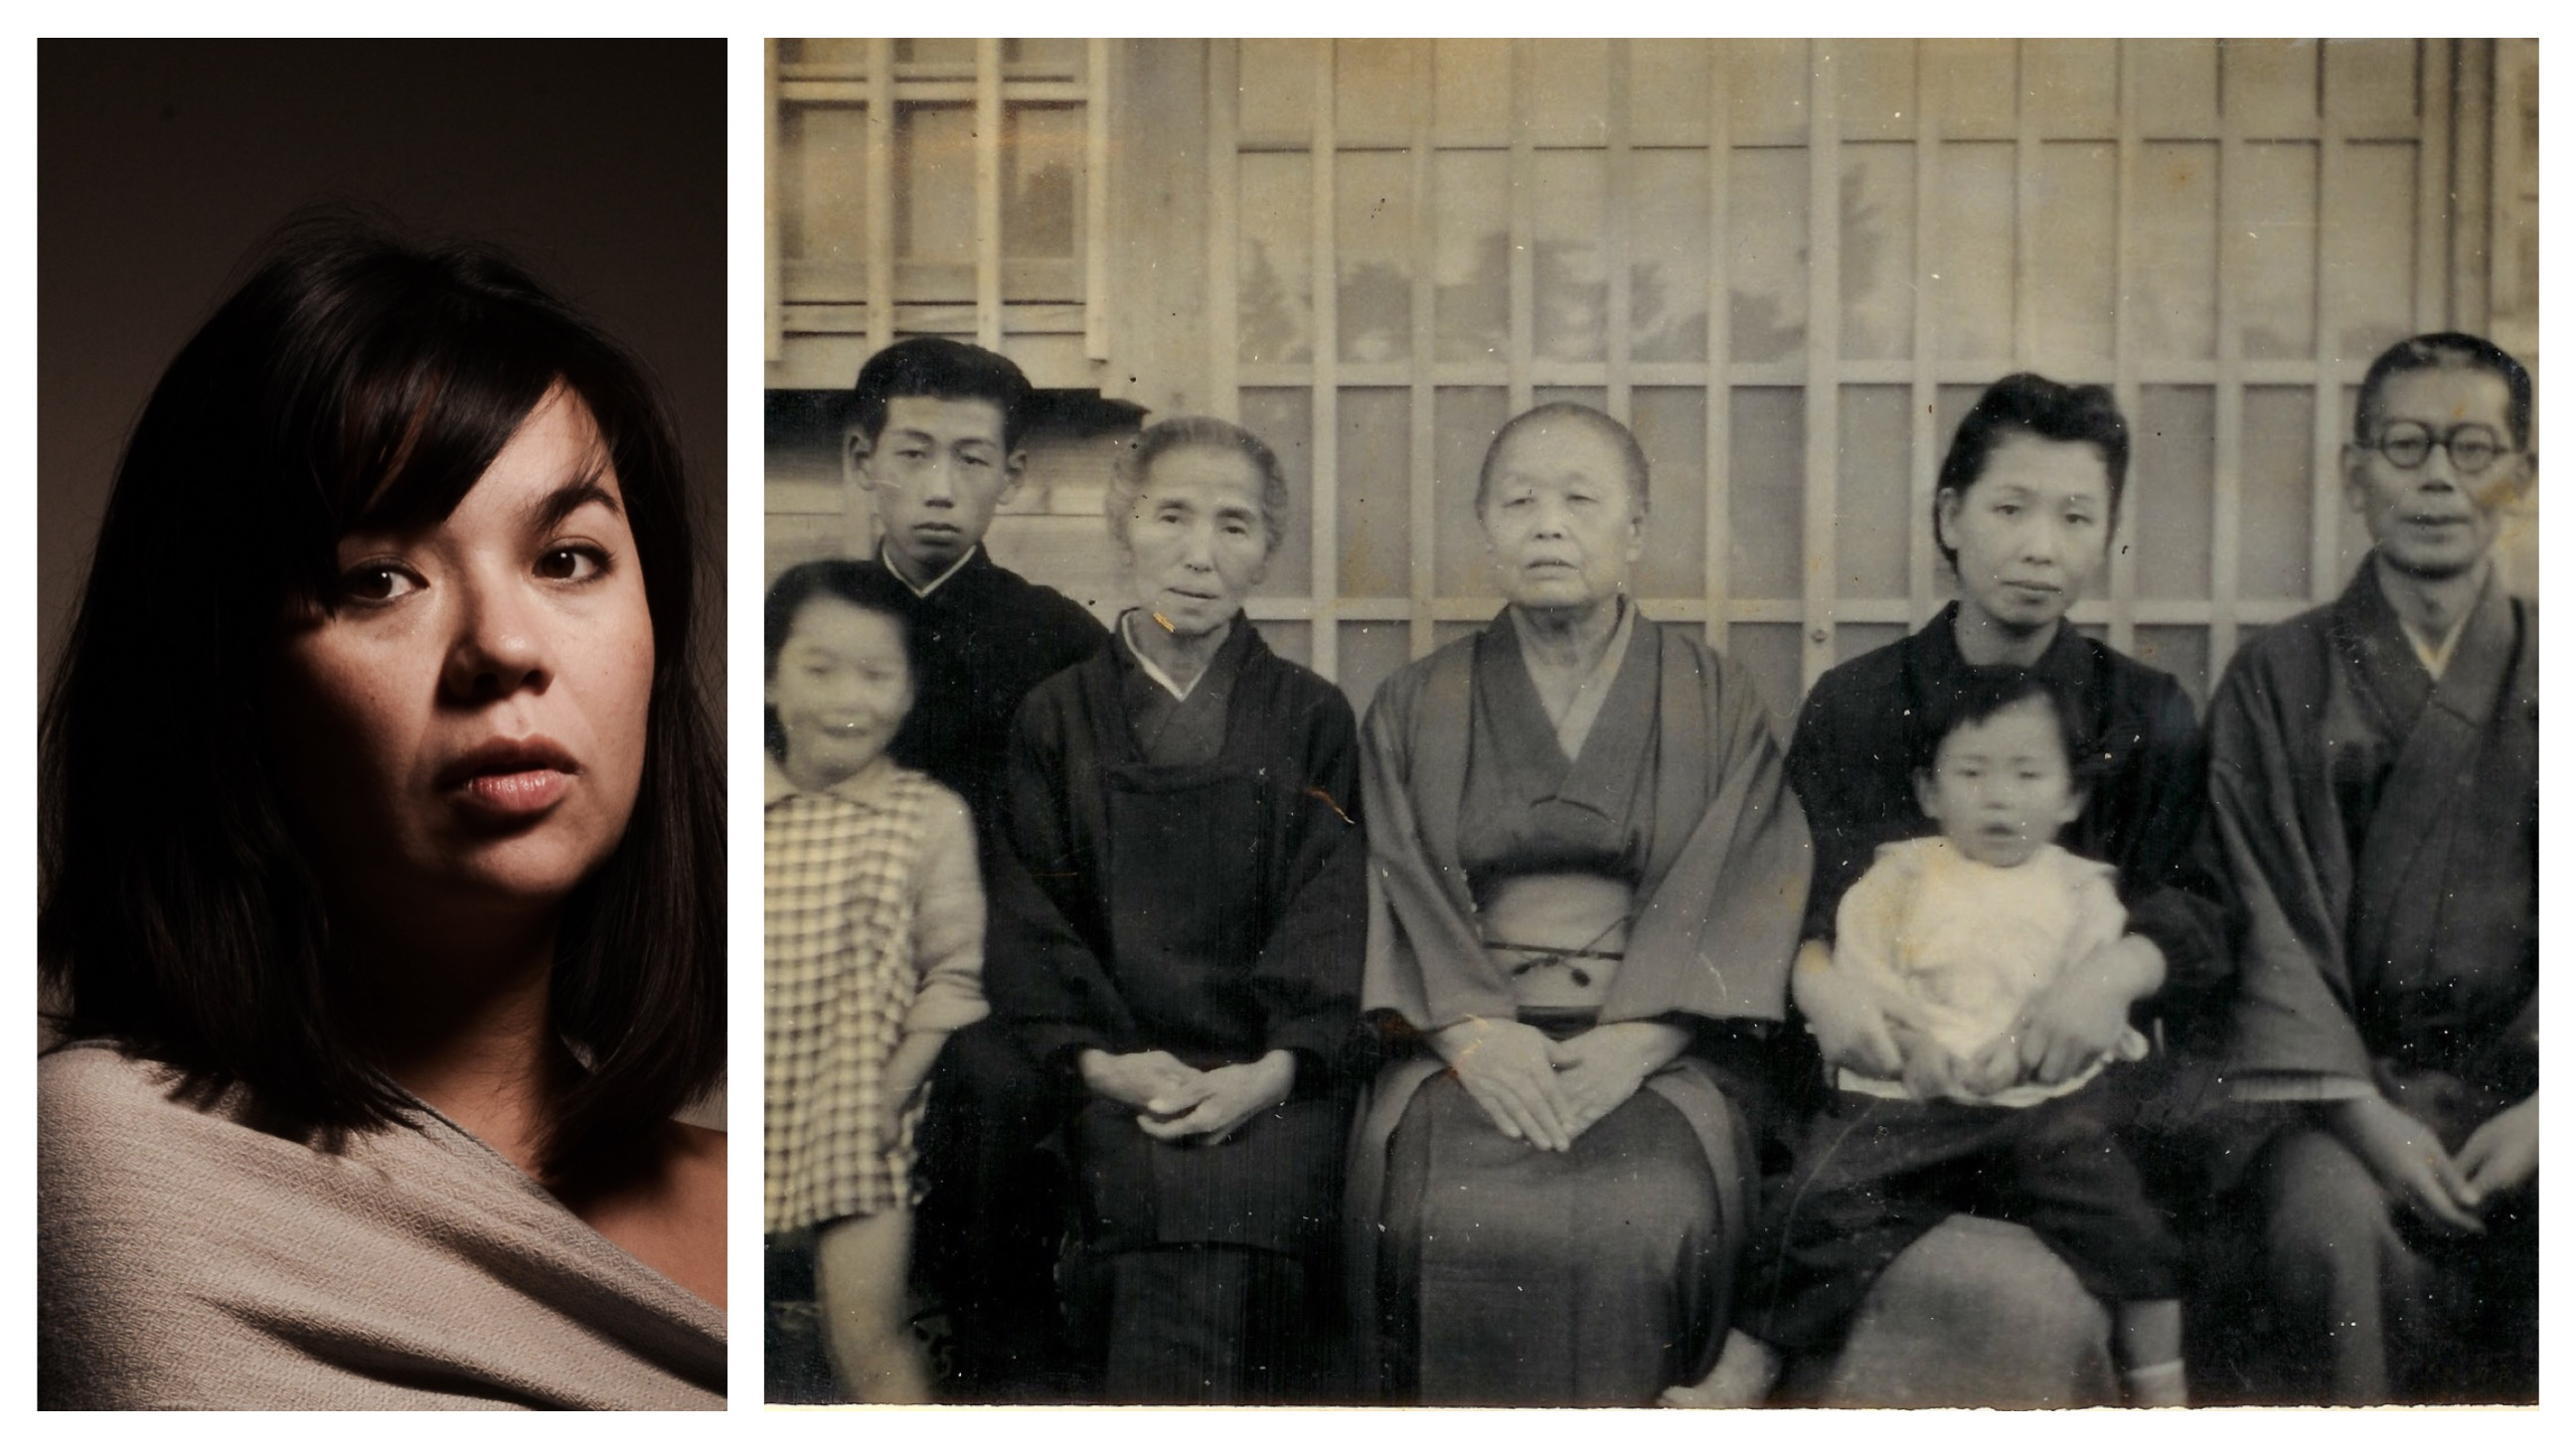 A young mixed race Asian American woman sits for a dramatically lit portrait; the right side of the image is an old family photo in black in white.